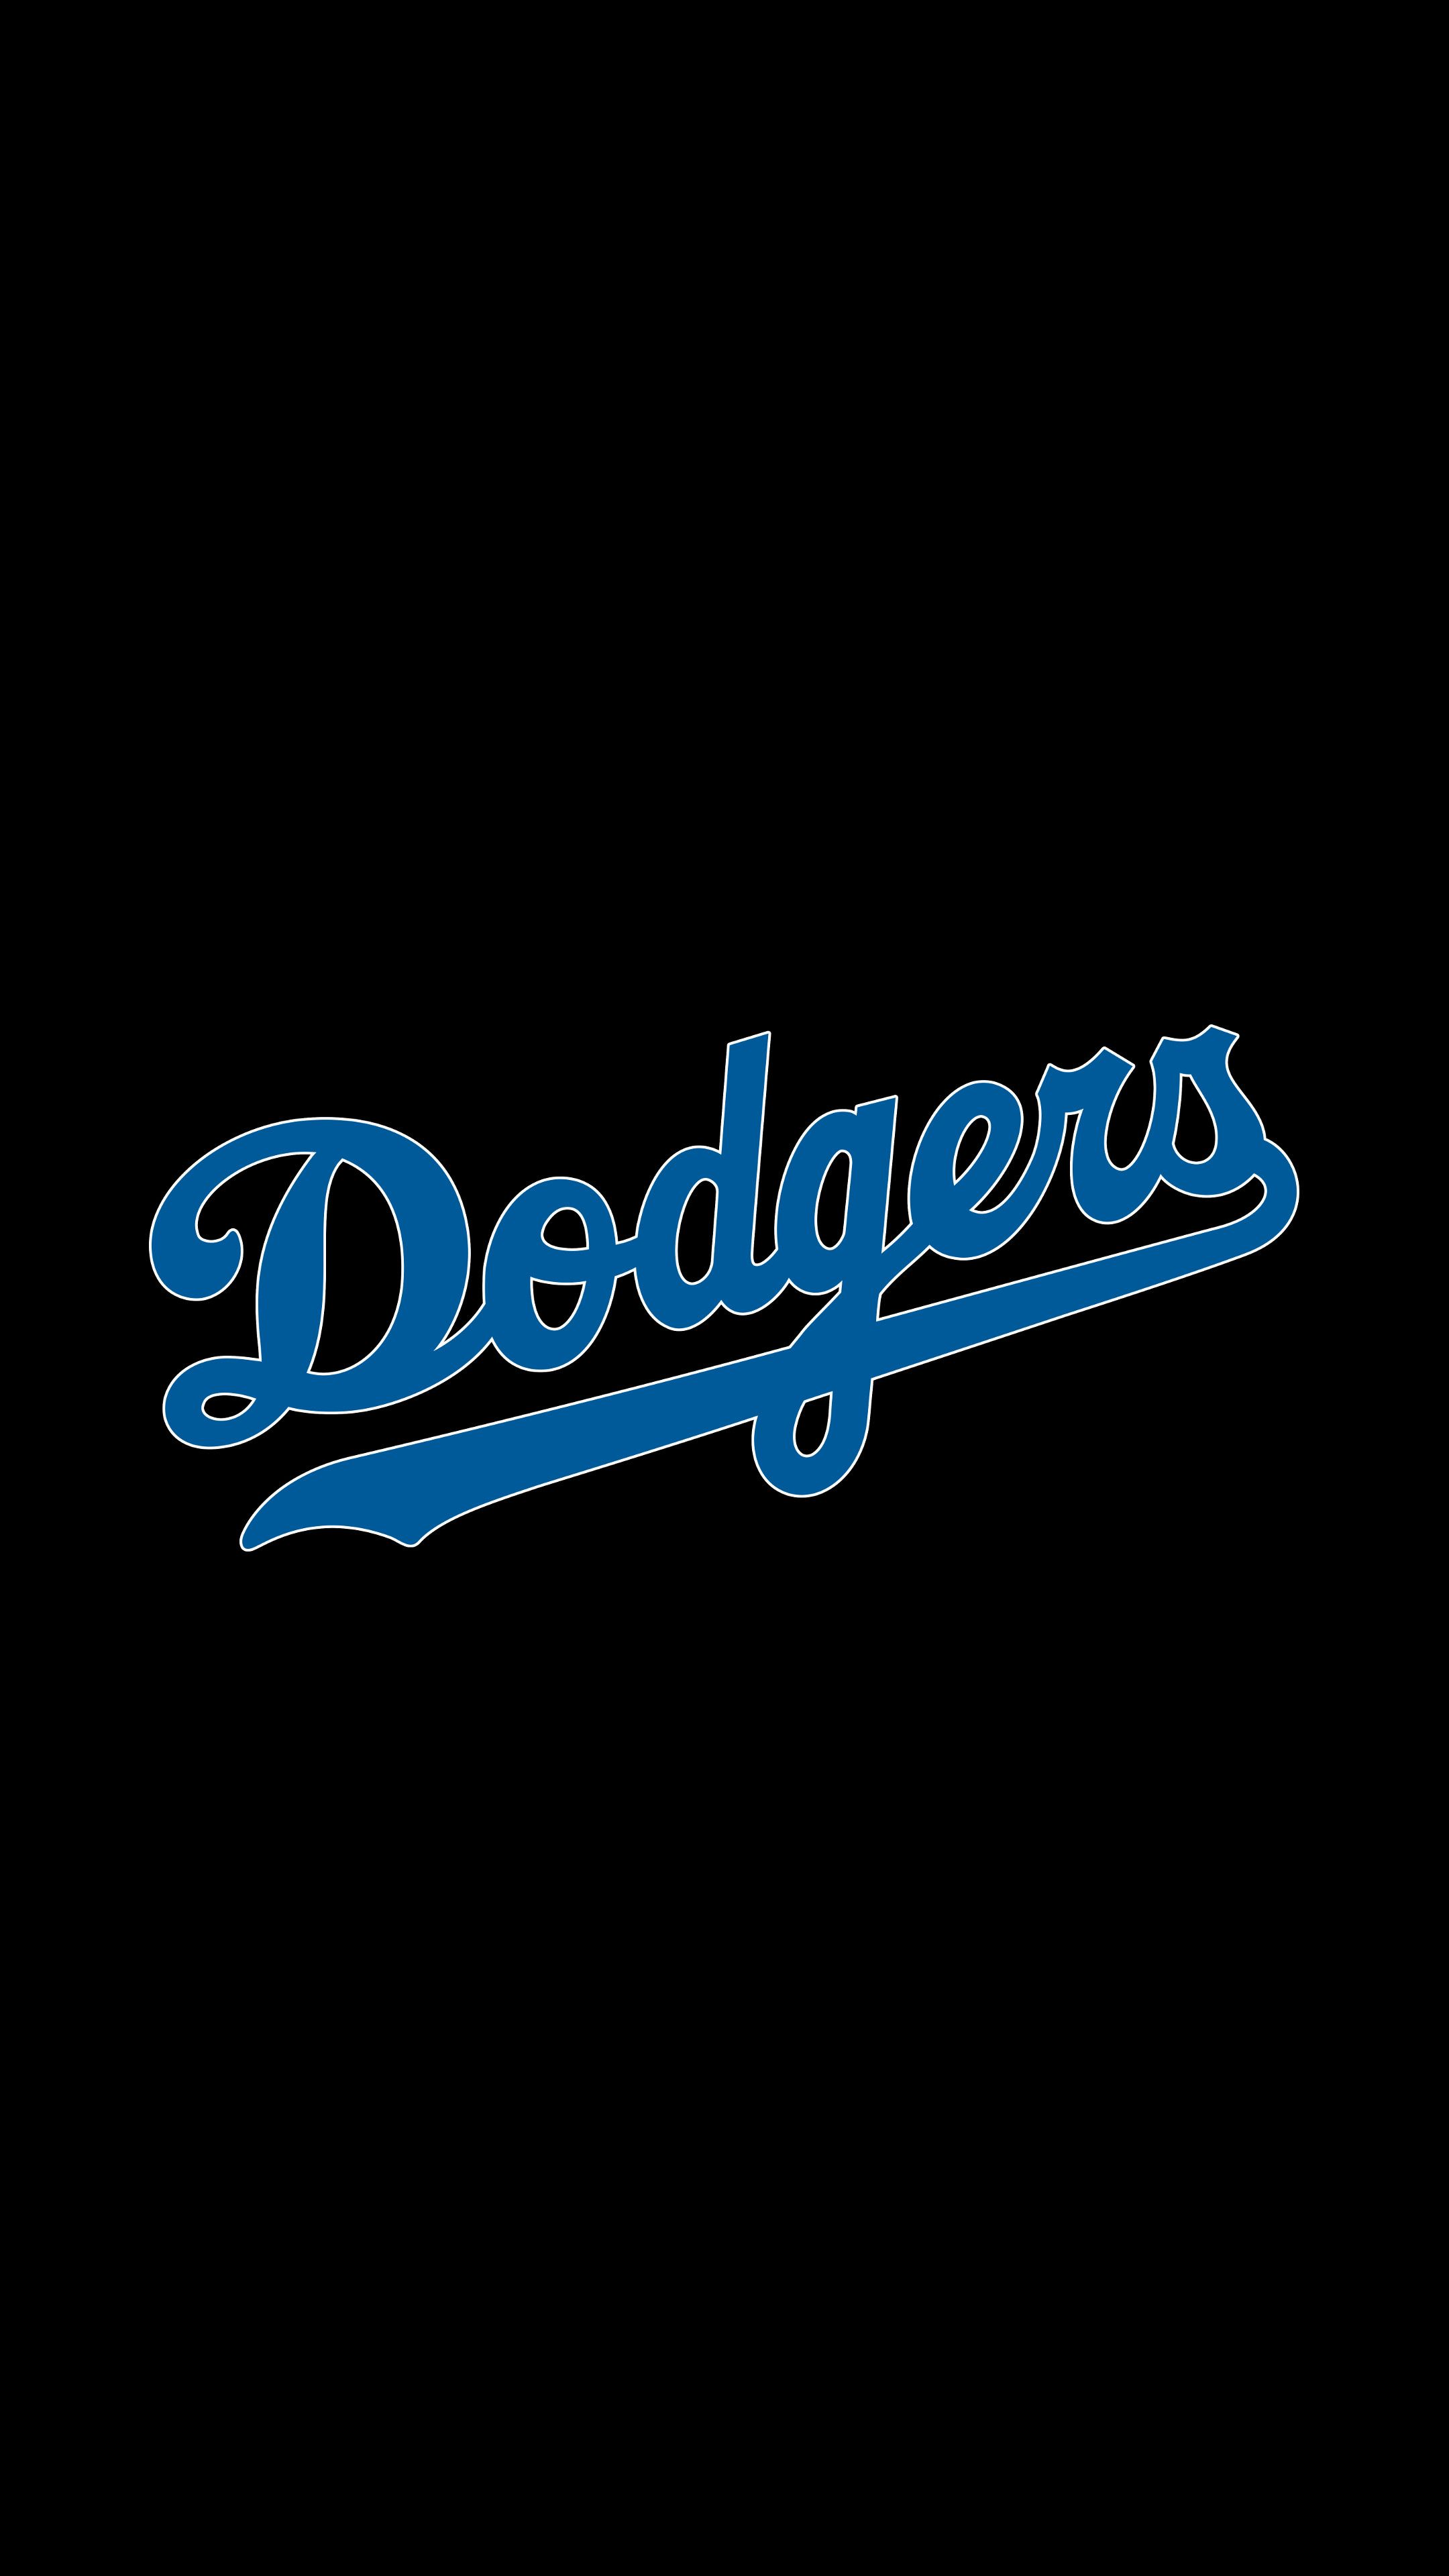 2160x3840 La Dodgers Logo Fulfilled Request 2160x3840 Dodgers La Dodgers Logo Mlb Baseball Logo